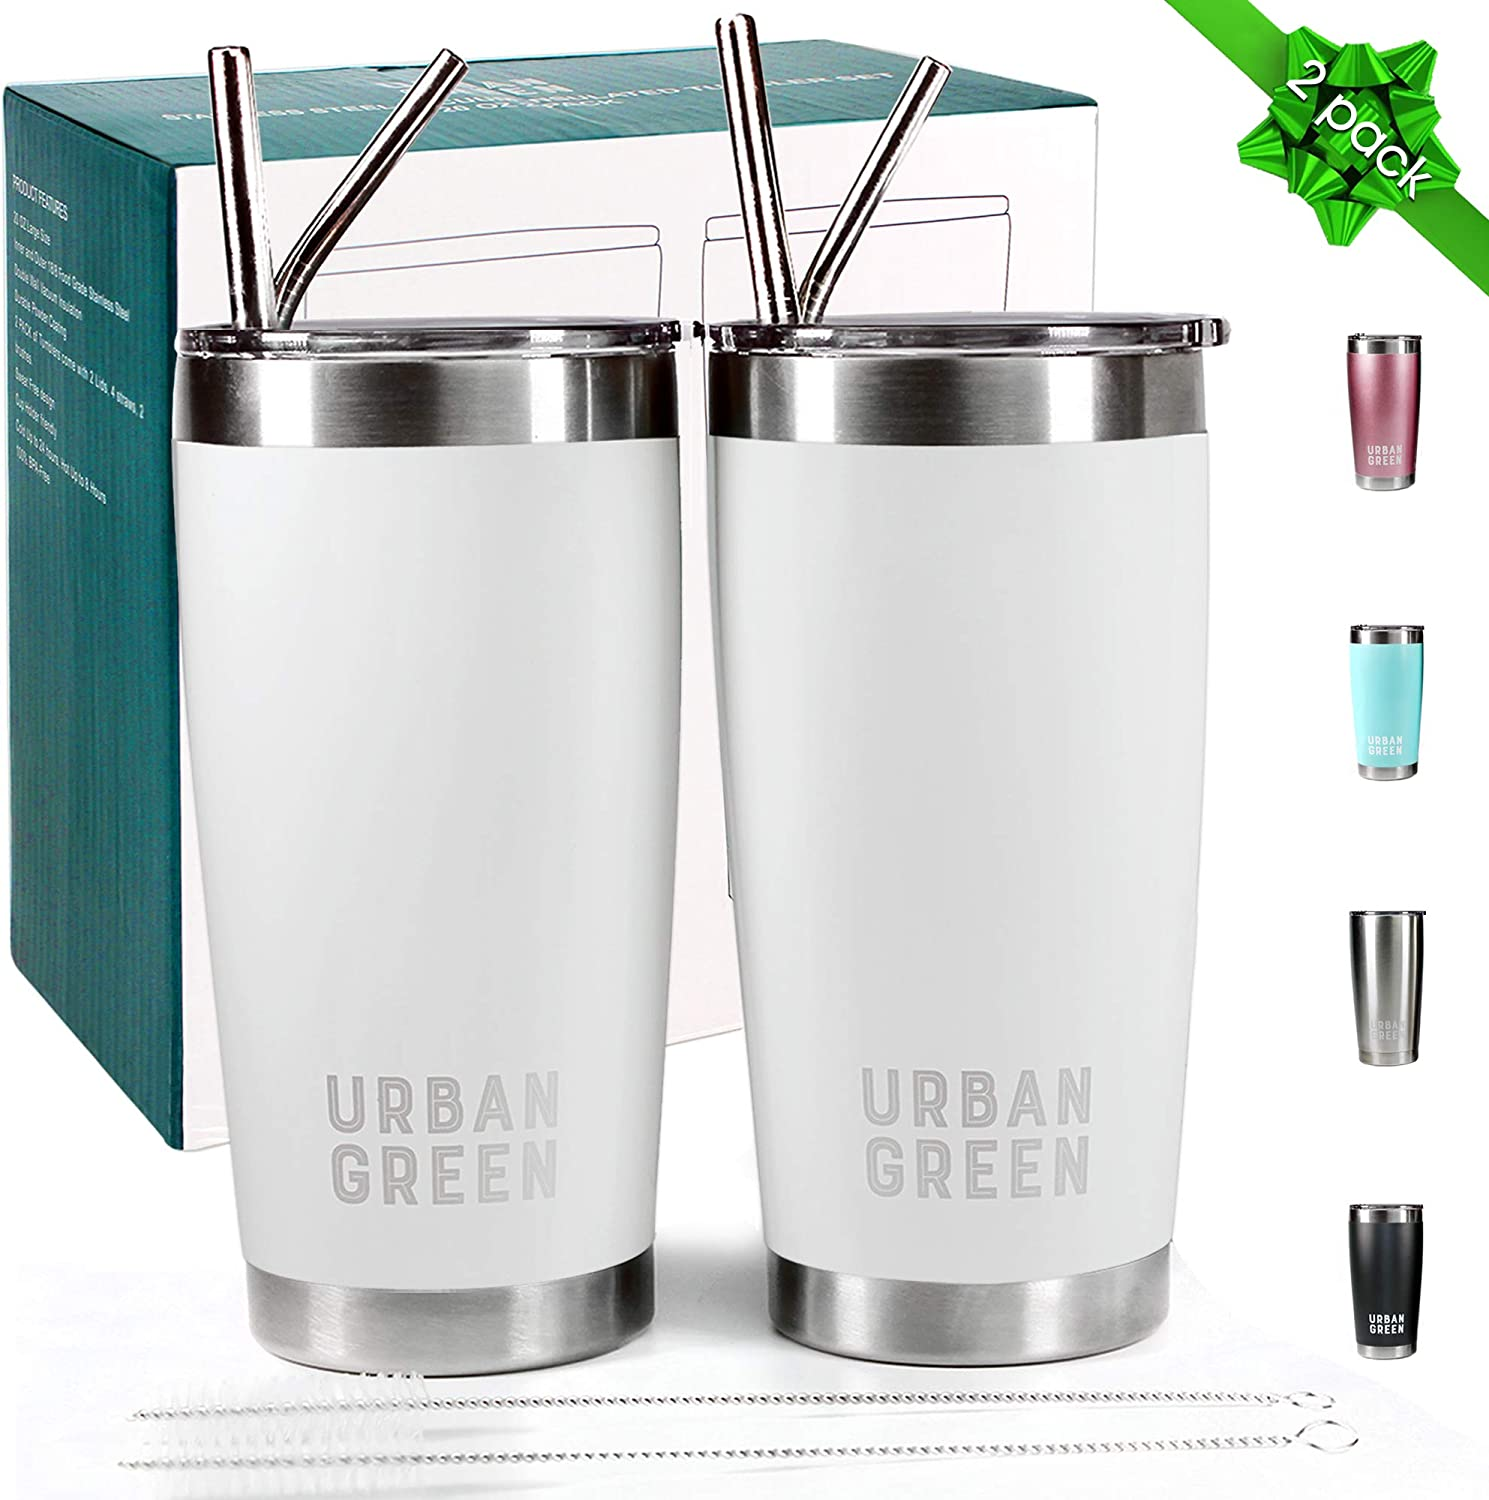 20oz Stainless Steel Tumblers with Lids Urban Green,Vacuum Insulated Coffee Cup Mug, Double Wall Travel tumbler with Spill-Proof Lid, 2 Pack, 4 Straws, Pipe Brus, Father's Day Gift Pearl White